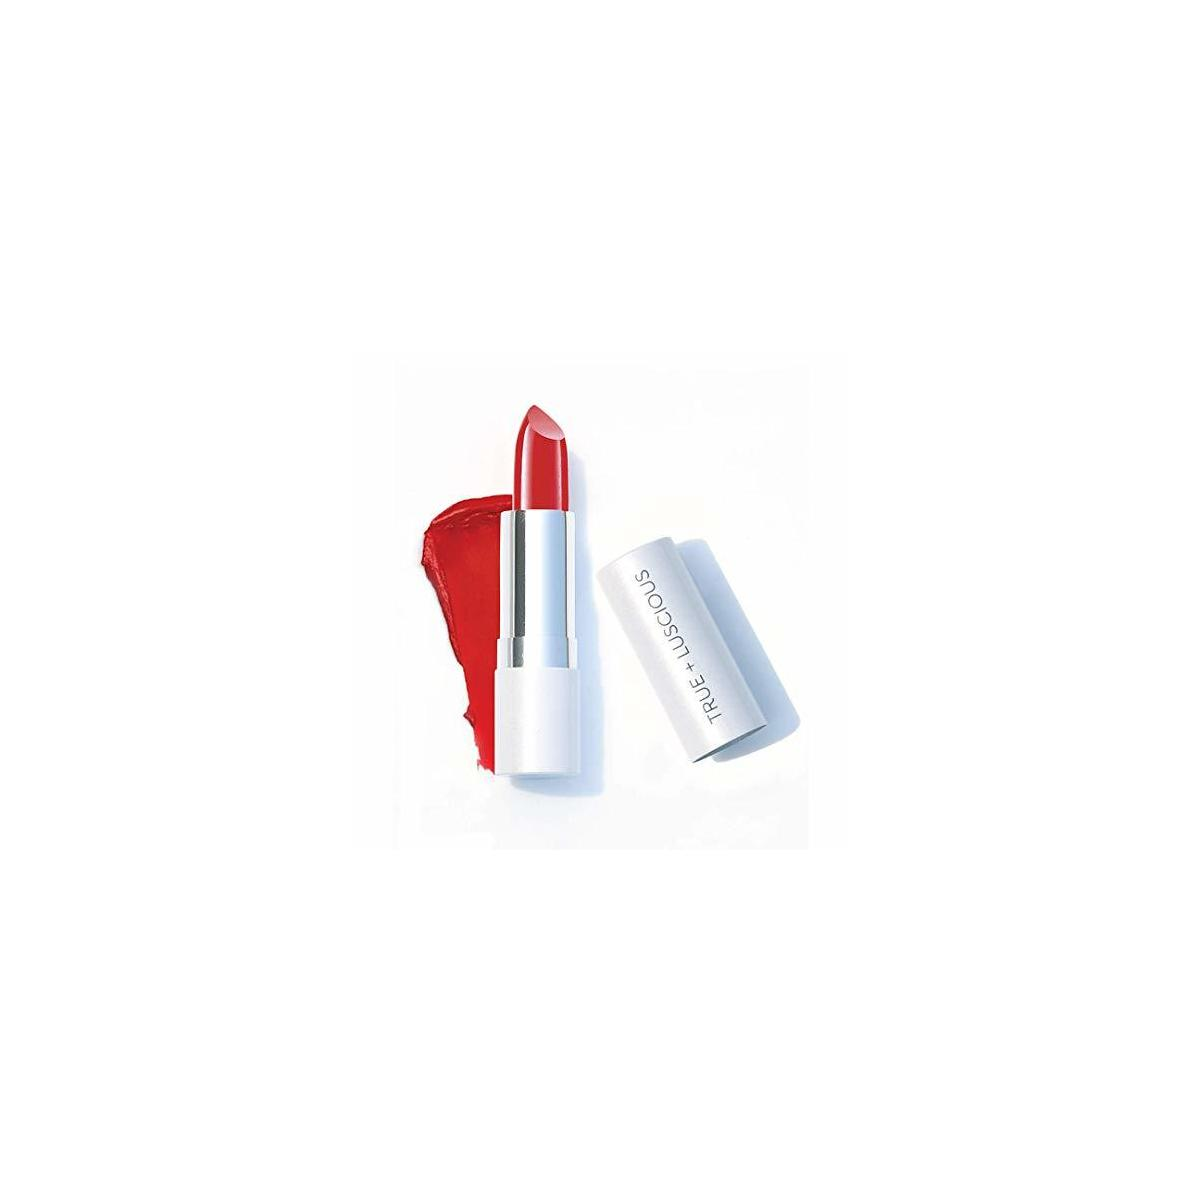 Super Moisture Lipstick by True + Luscious - Clean Formula, Smooth and Hydrating - Vegan and Cruelty Free Lipstick, Non Toxic and Lead Free Shade: Uptown Red - 0.12 oz